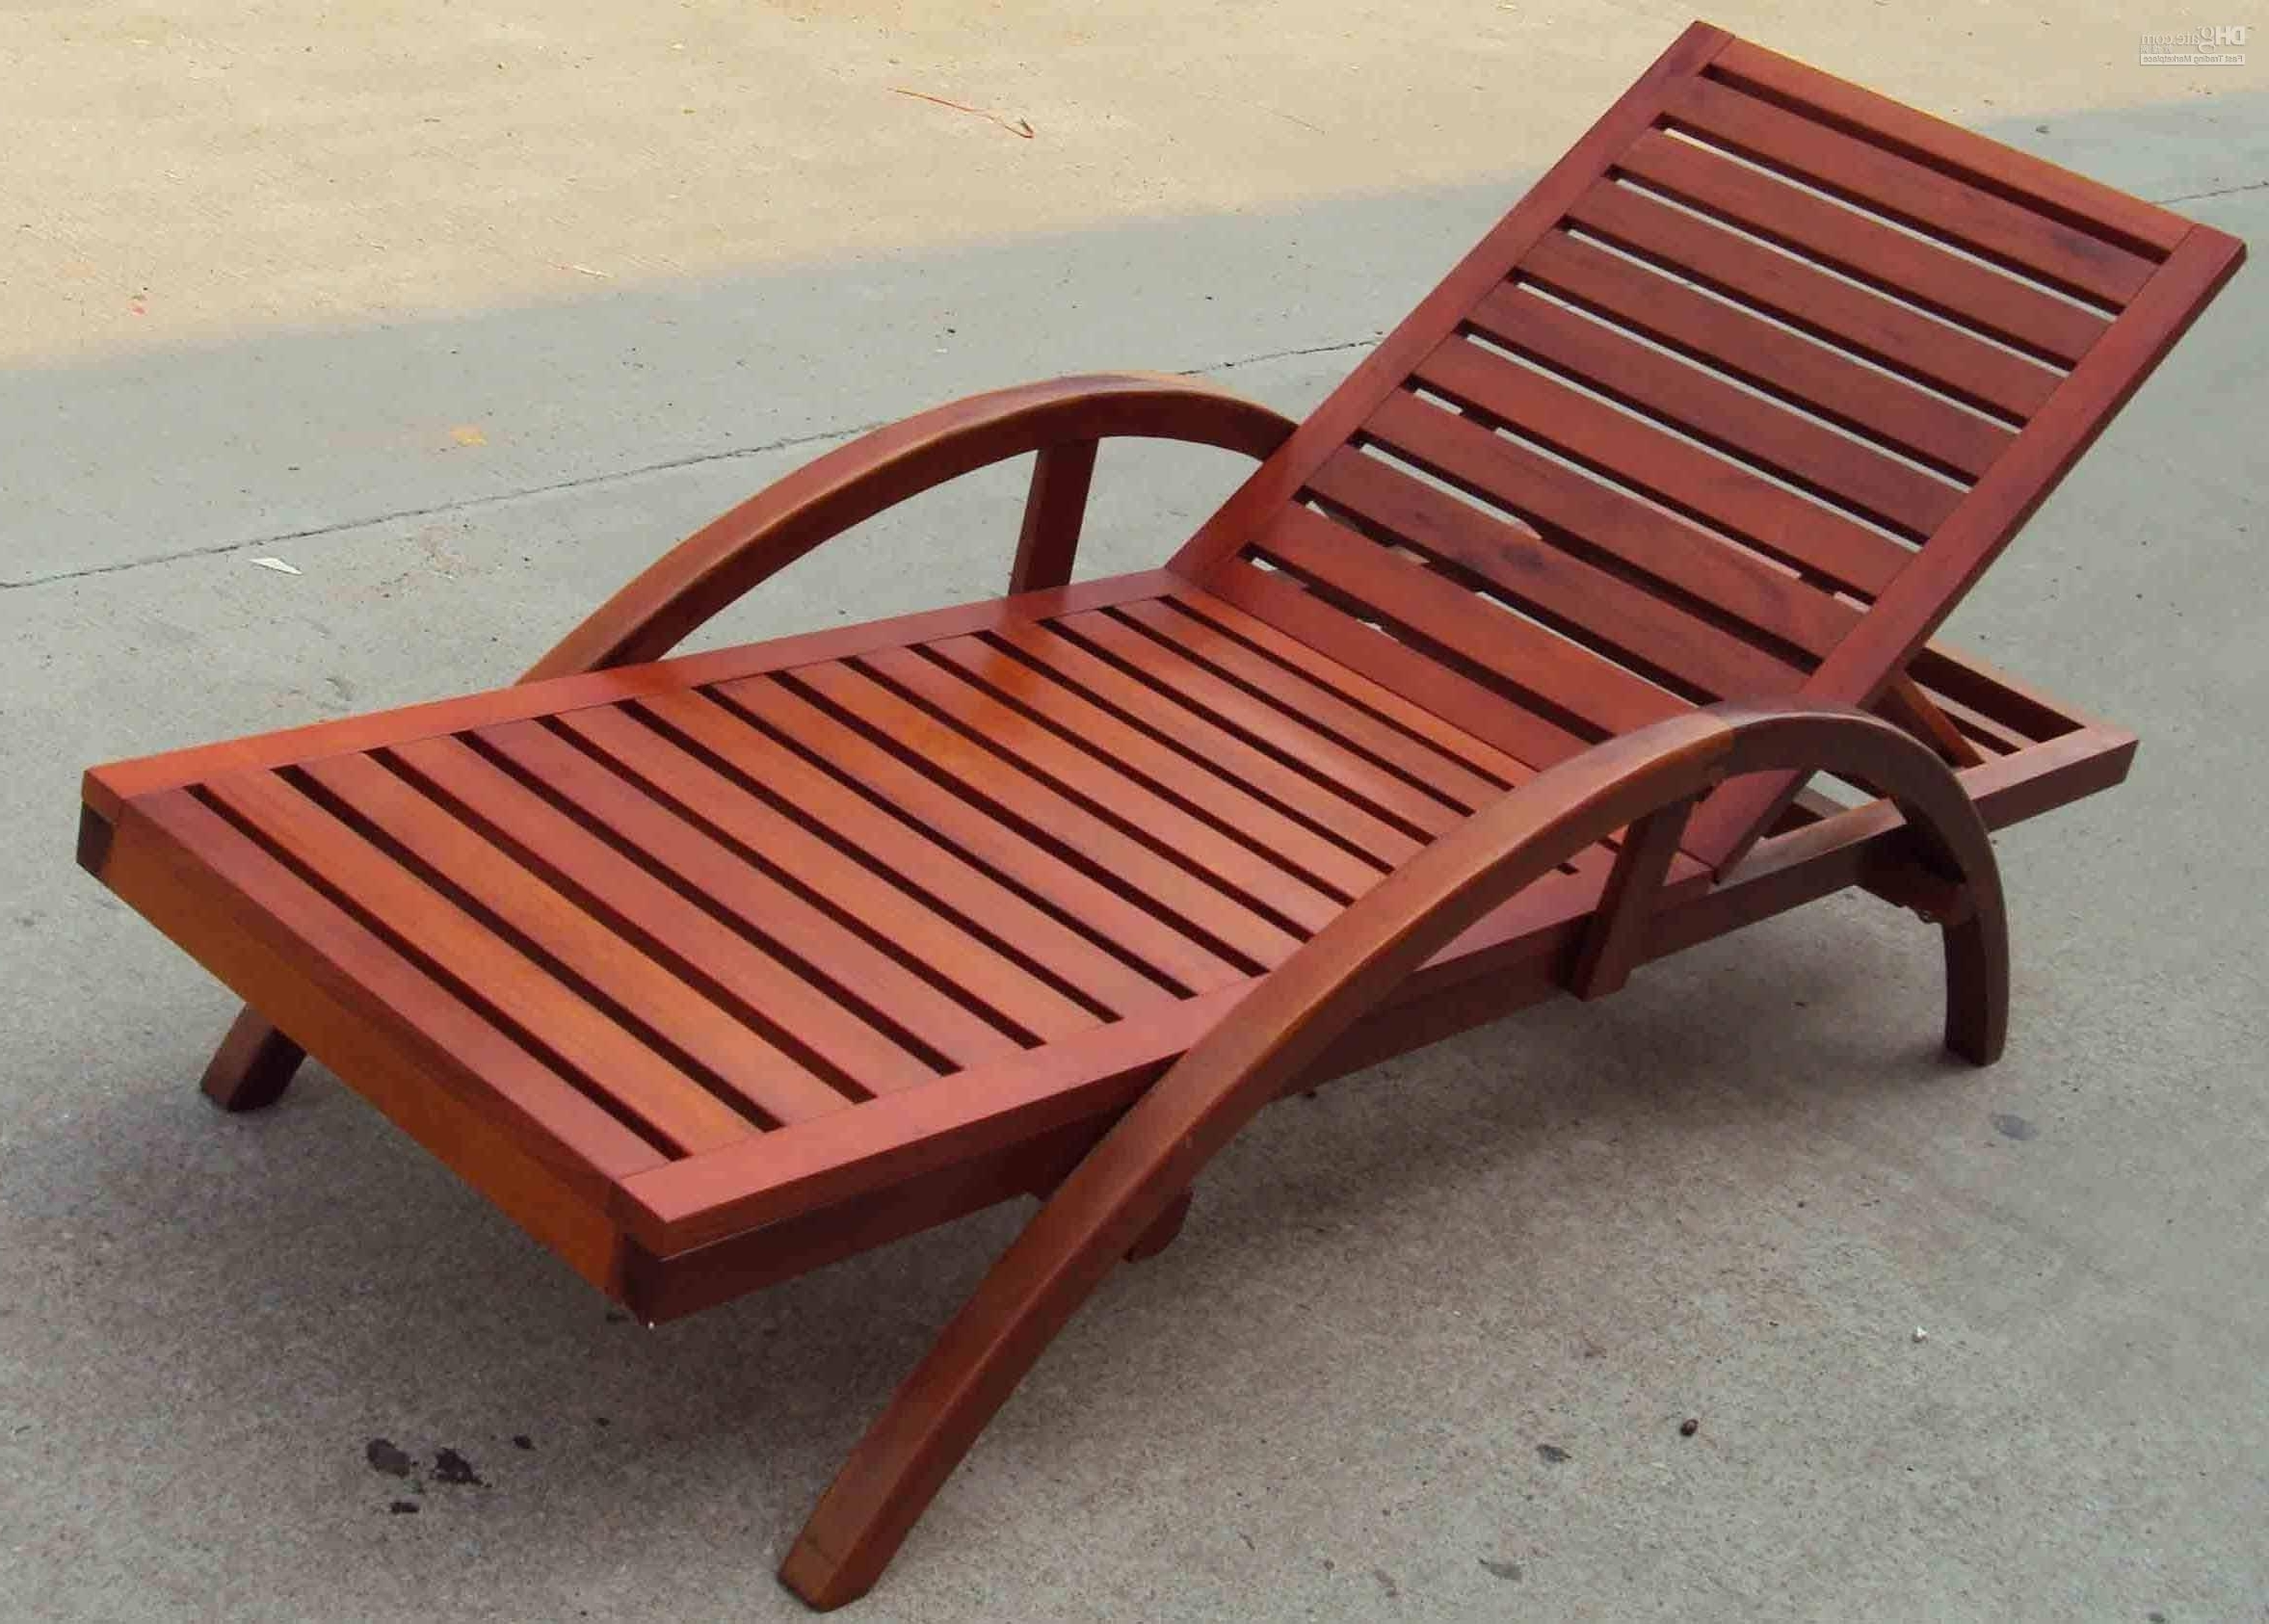 2018 Wooden Beach Lounge Chair Plans • Lounge Chairs Ideas Inside Chaise Lounge Beach Chairs (View 10 of 15)